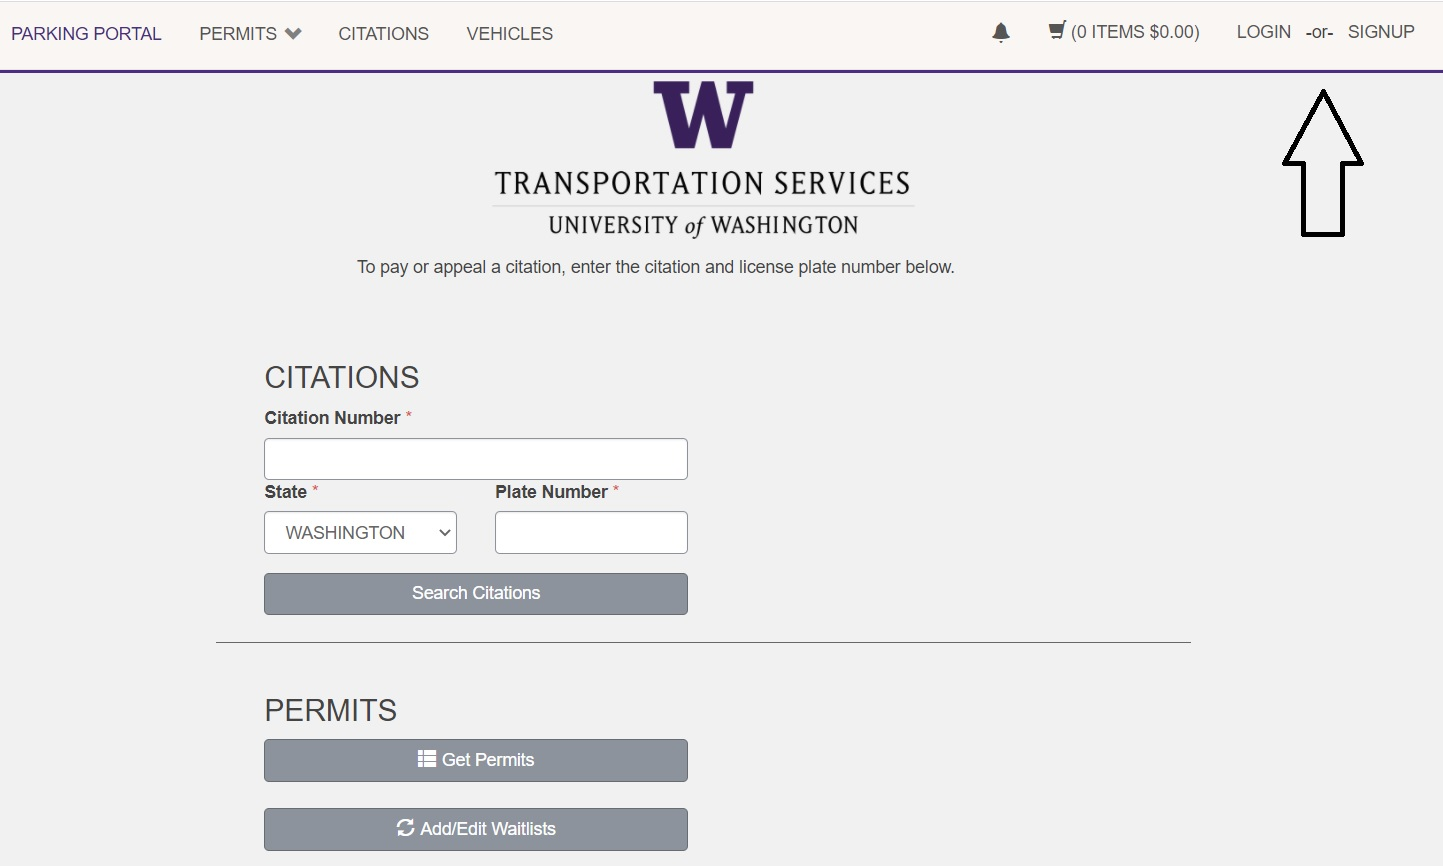 screenshot of Transportation Services online customer portal login with arrow pointing to login and sign up button